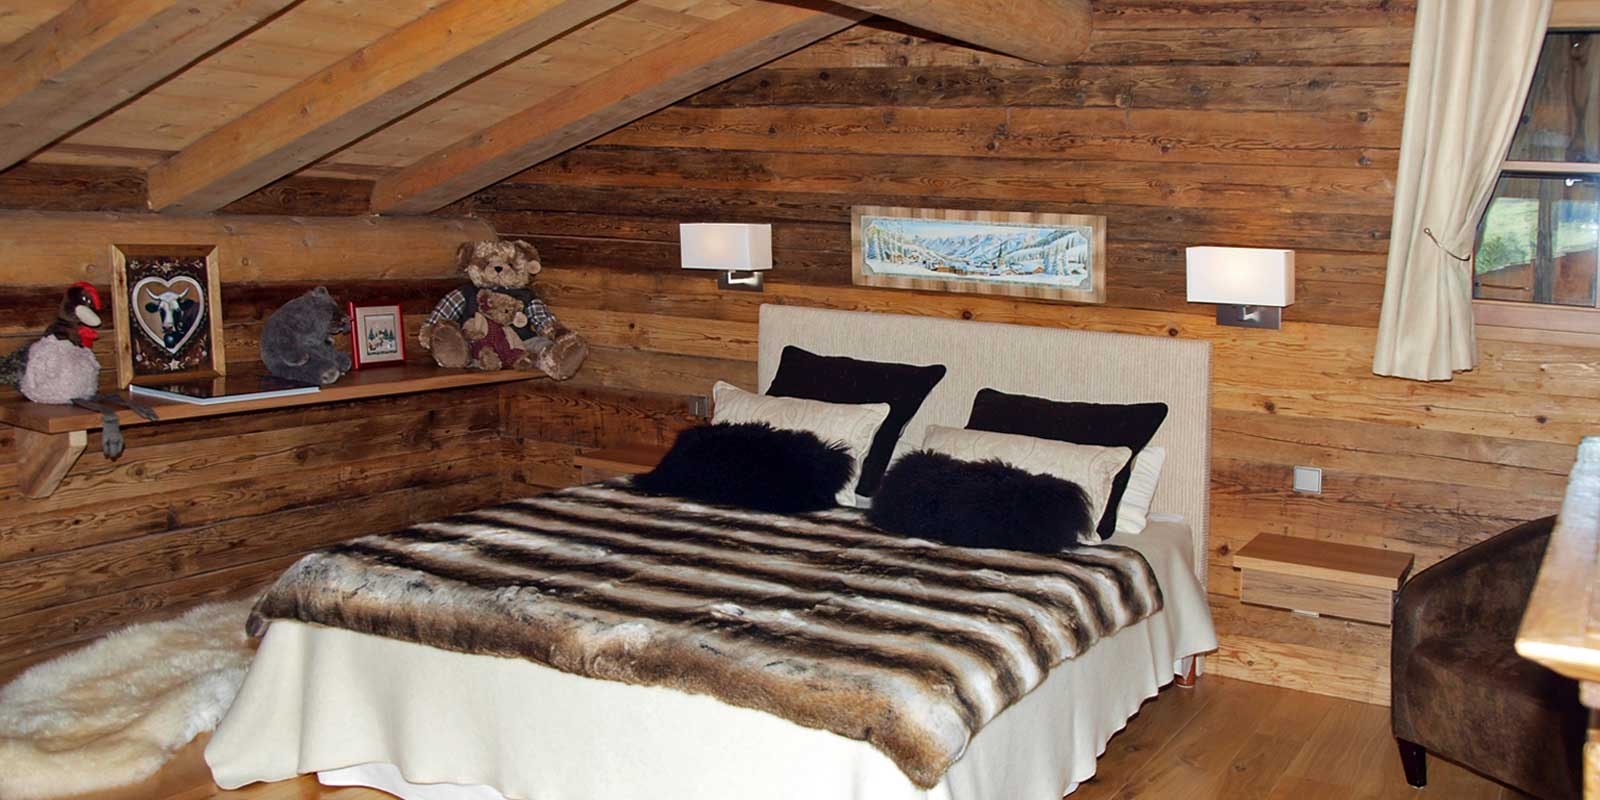 interieur chalet savoyard 13 denis goy. Black Bedroom Furniture Sets. Home Design Ideas